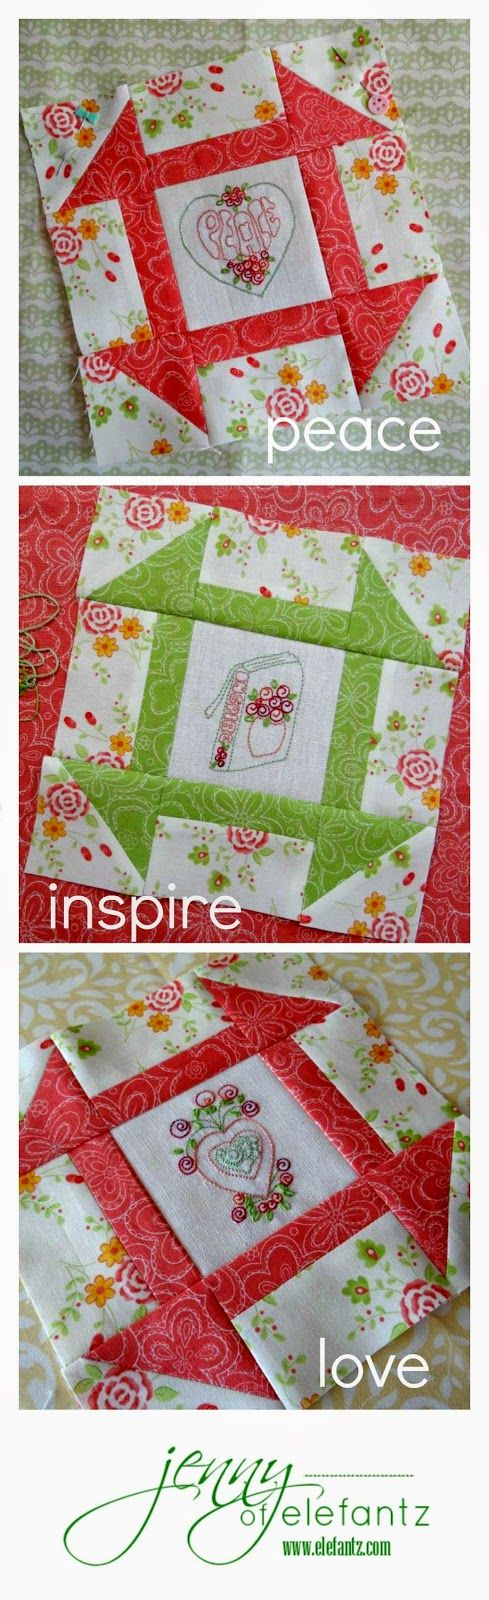 "First three blocks of the Shabby Roses Churn Dash Stitchalong! ""Peace"" ""Inspire"" ""Love""...only 9 more to come."